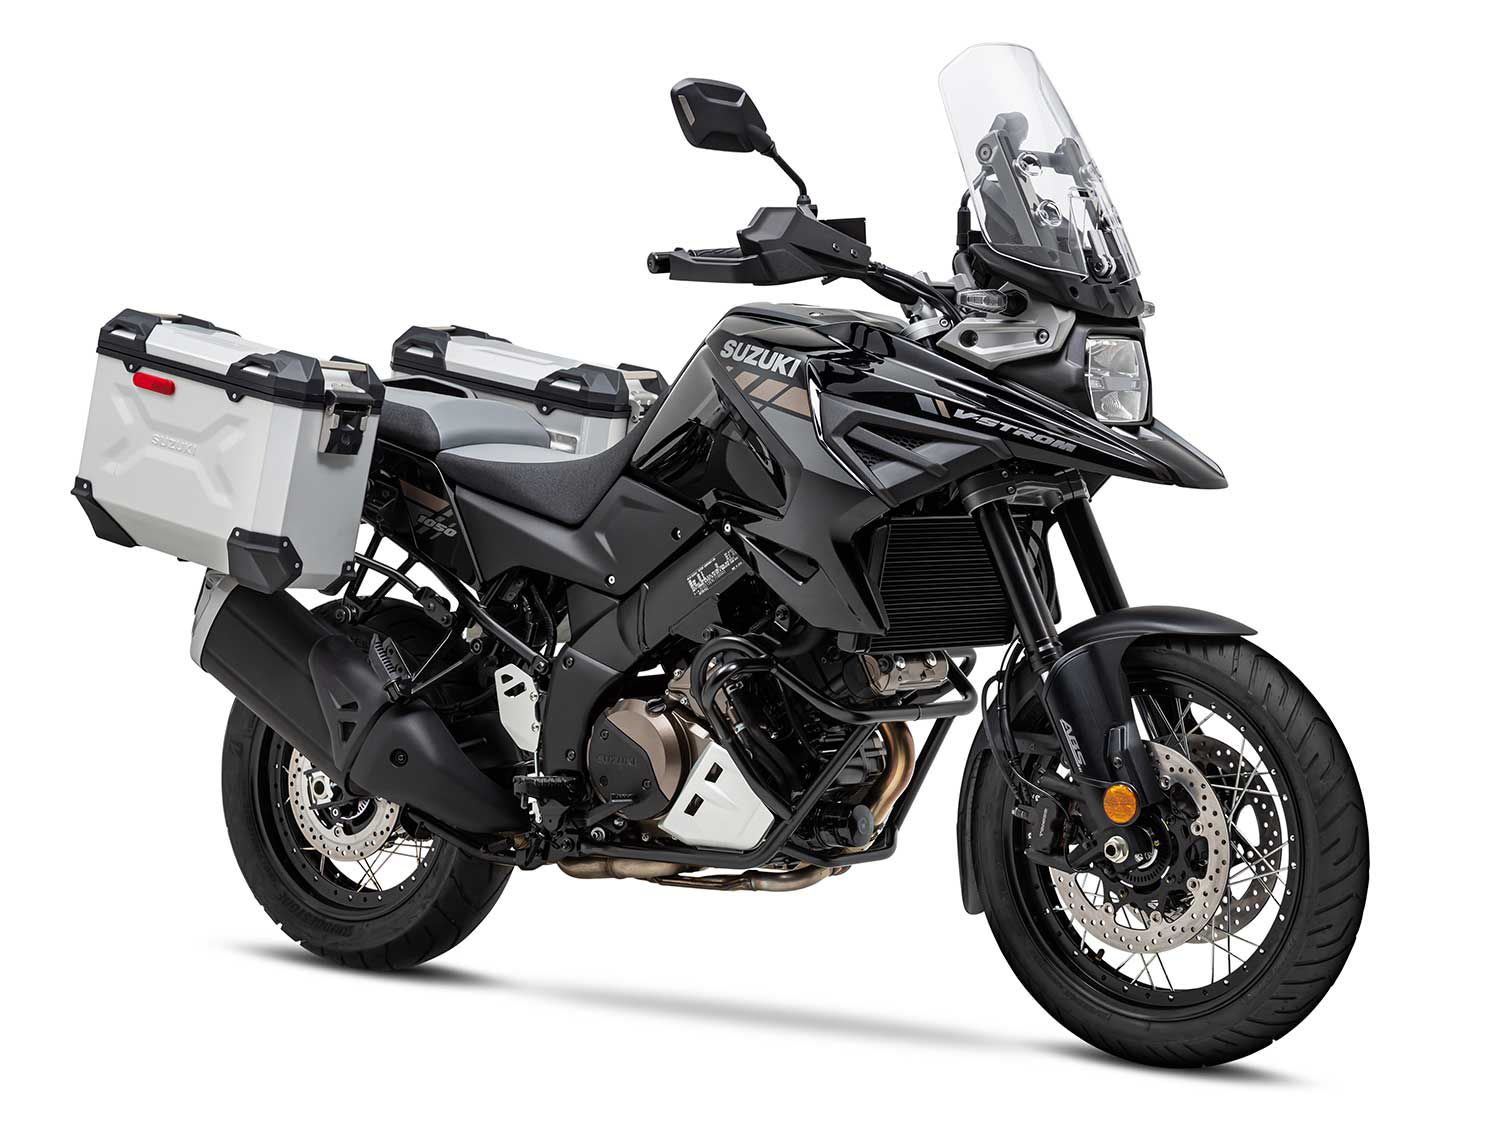 <h2>Suzuki 1050XT Adventure</h2> </br> In addition to spoked wheels, the 1050XT Adventure is equipped with heated grips and key-matched panniers.